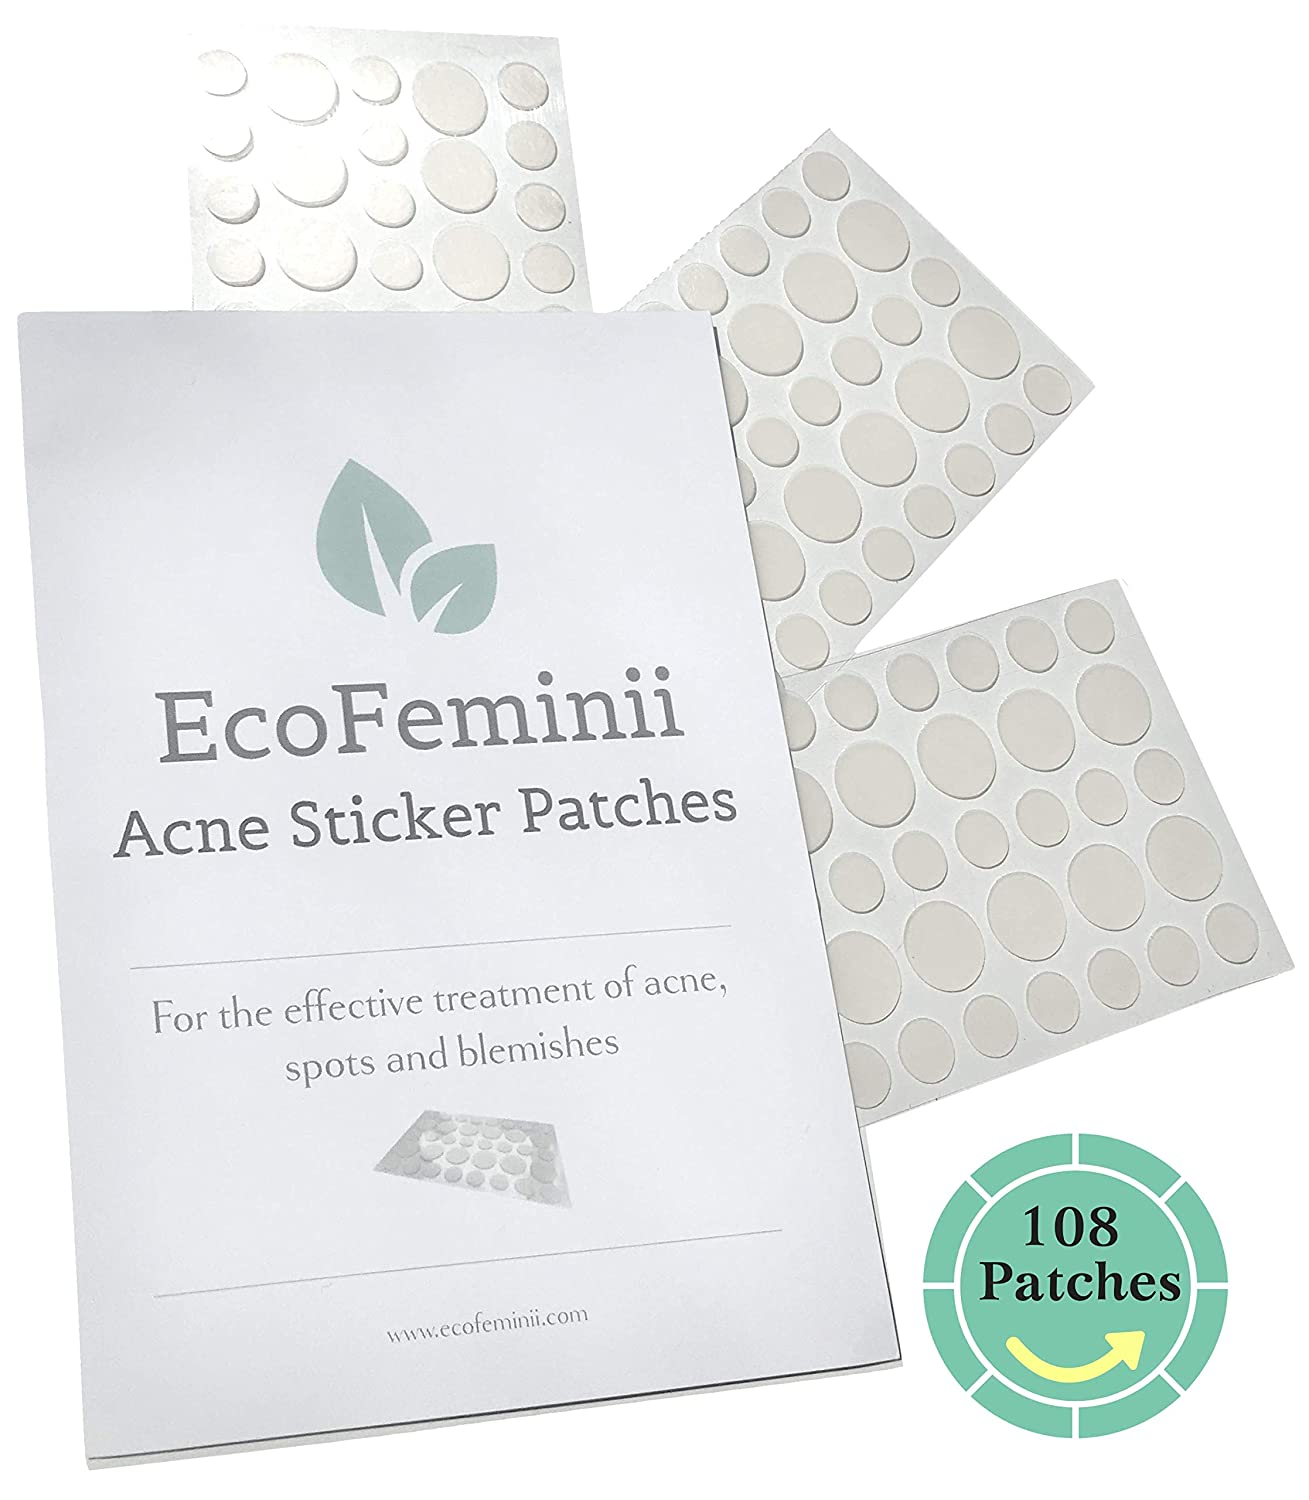 EcoFeminii Targeted Spot & Blemish Treatment Acne Patches-108 Count/3  Sheets-Absorbing Hydrocolloid Dot Covers Repair-Effective on  Oily/Combination